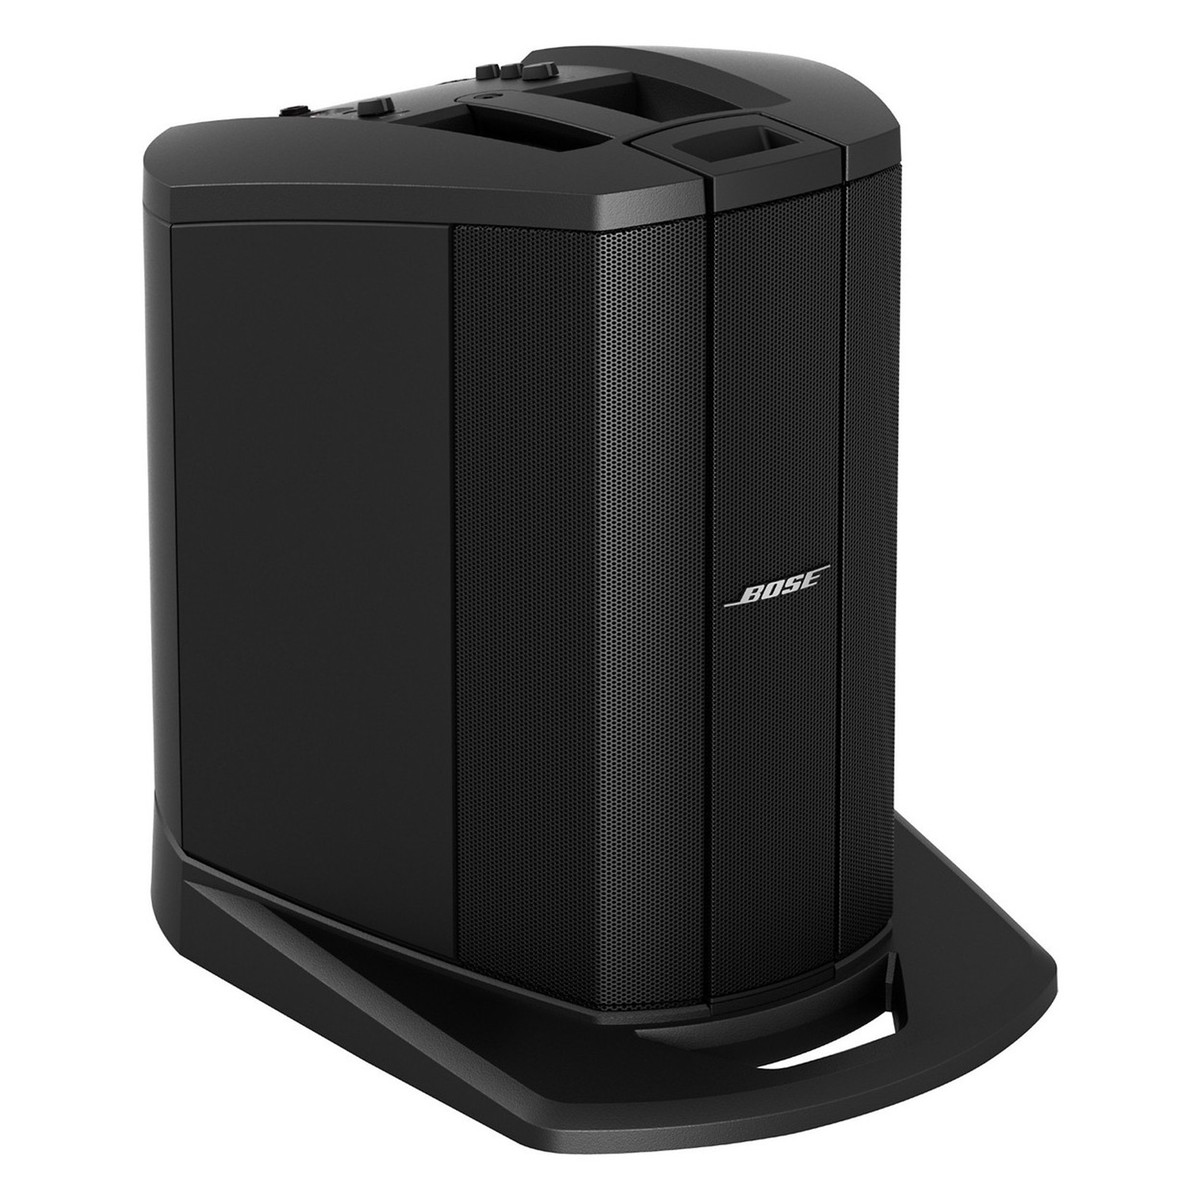 Bose L1 Compact Pa System With T1 Tonematch At Gear4music